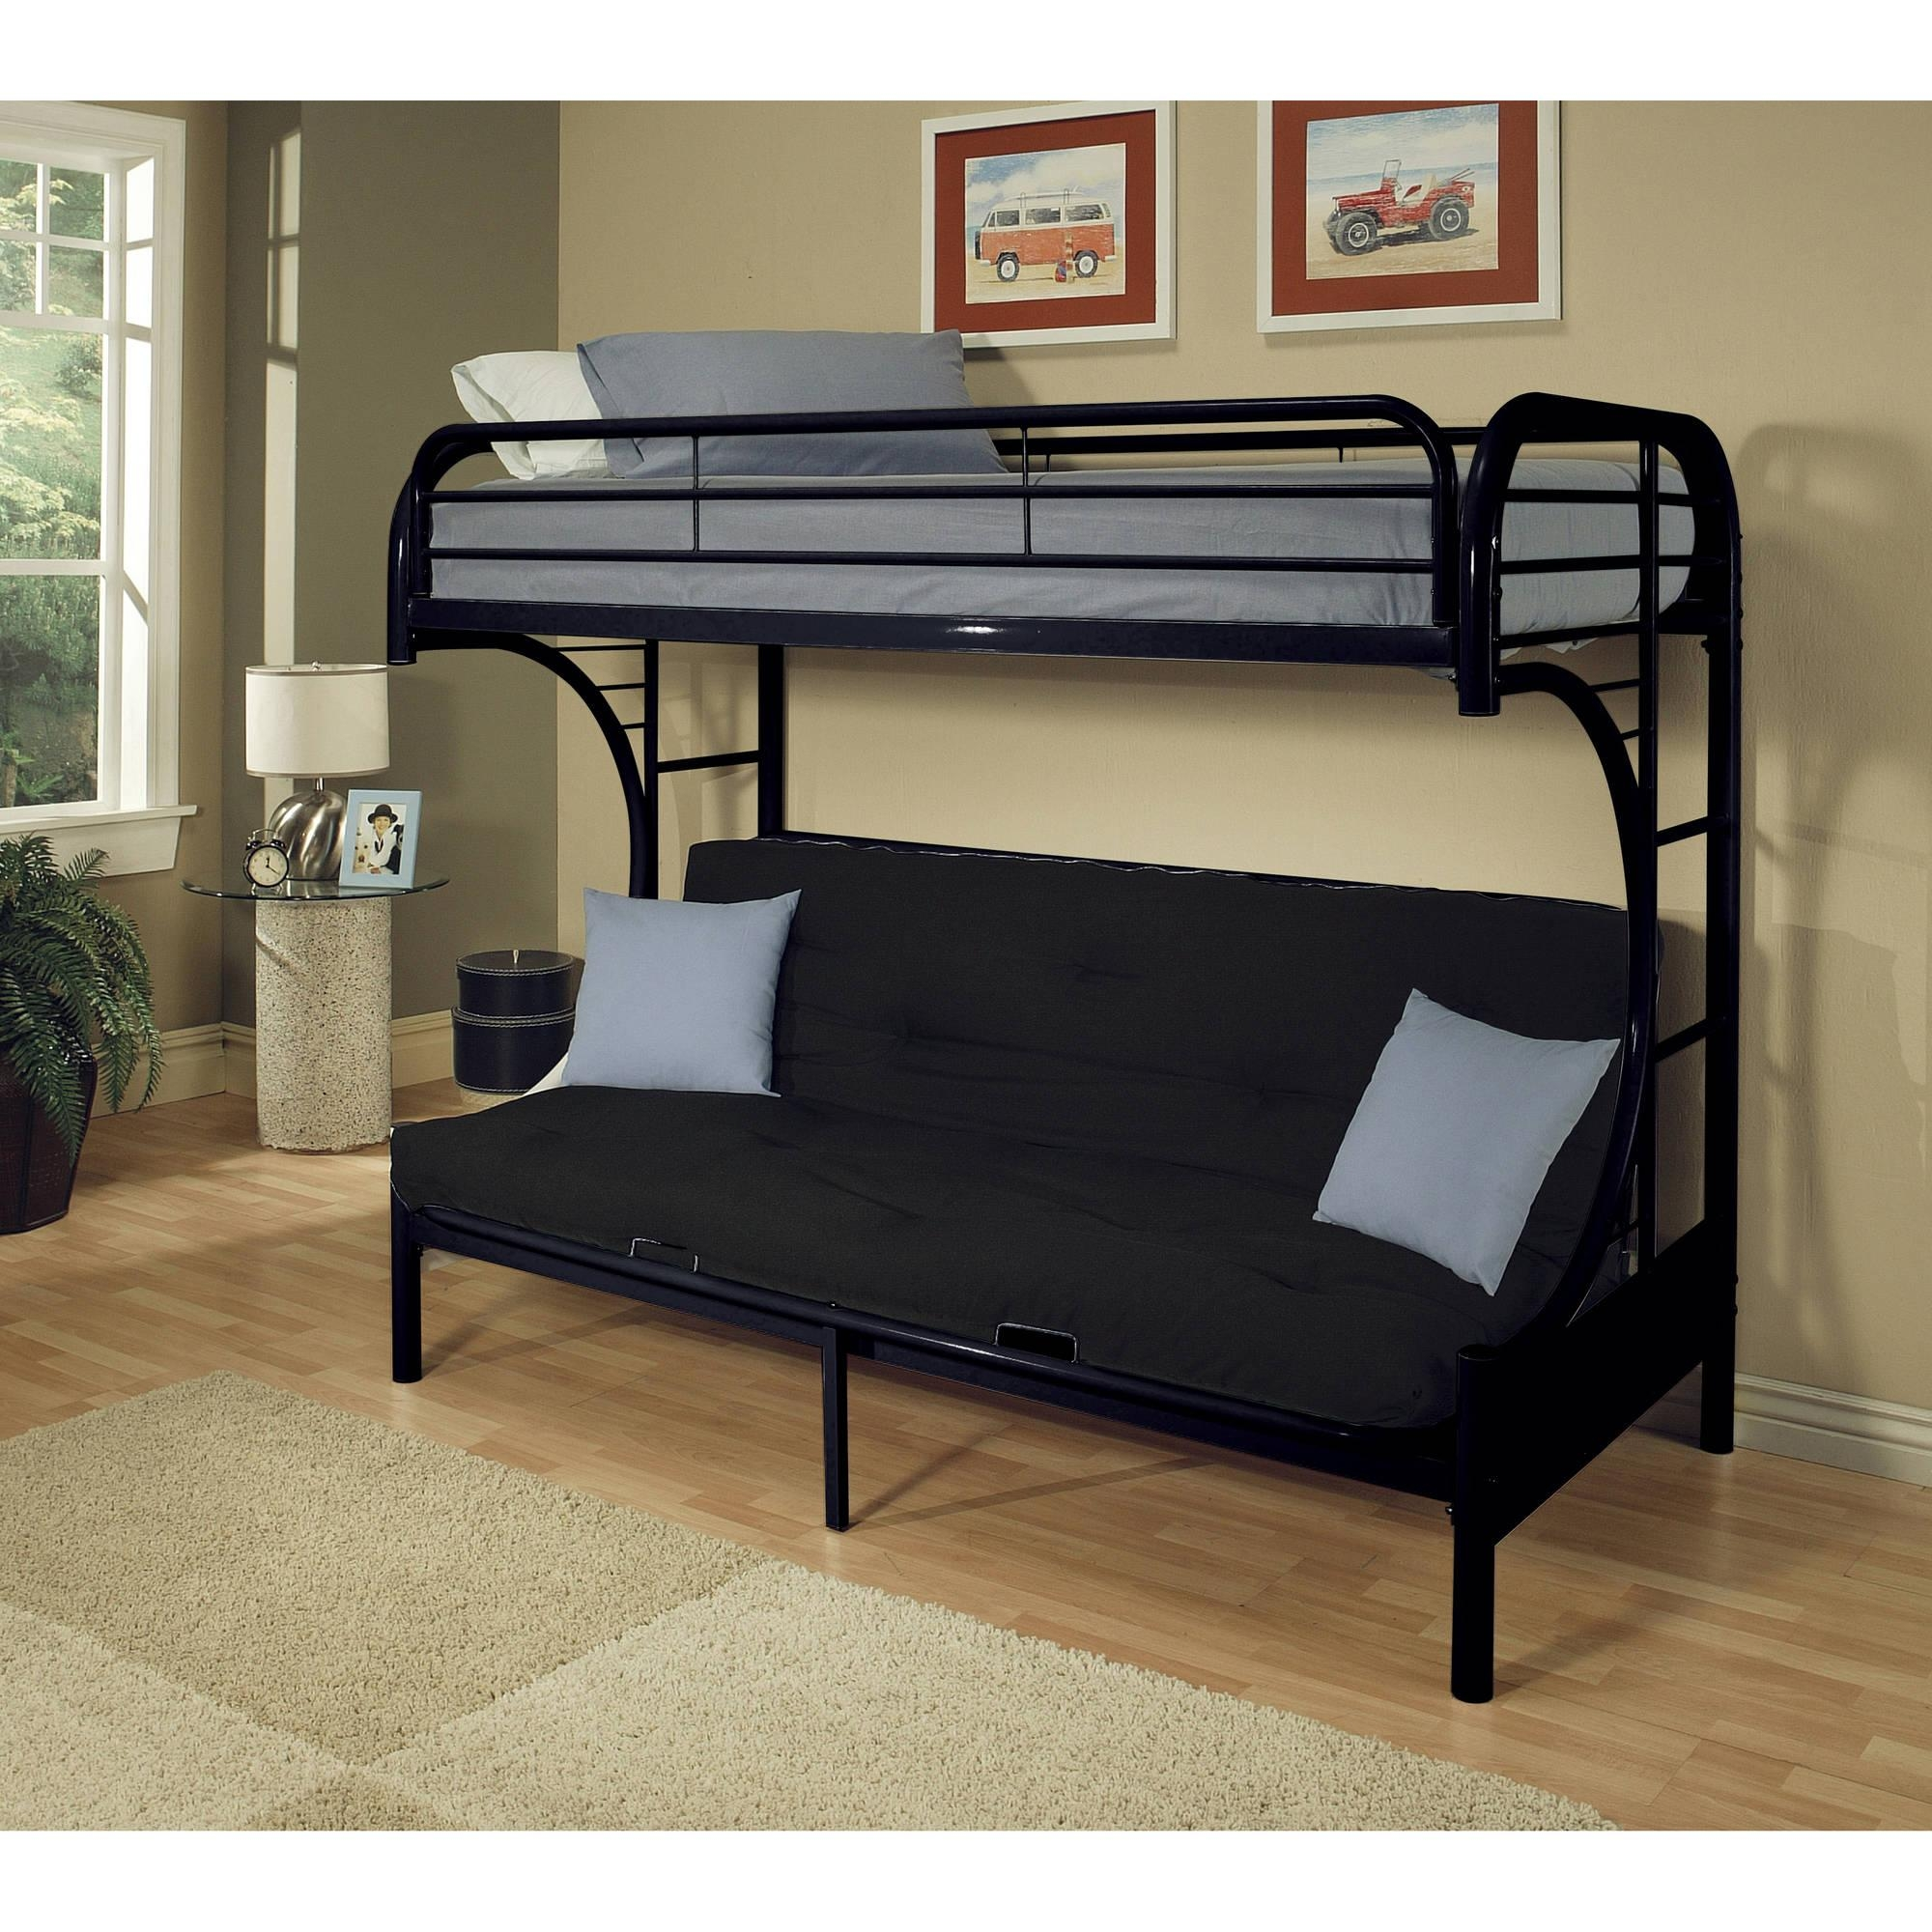 Furniture: Target Futons | Futon Beds Walmart | Couch Bed Walmart In Target Couch Beds (Image 6 of 20)